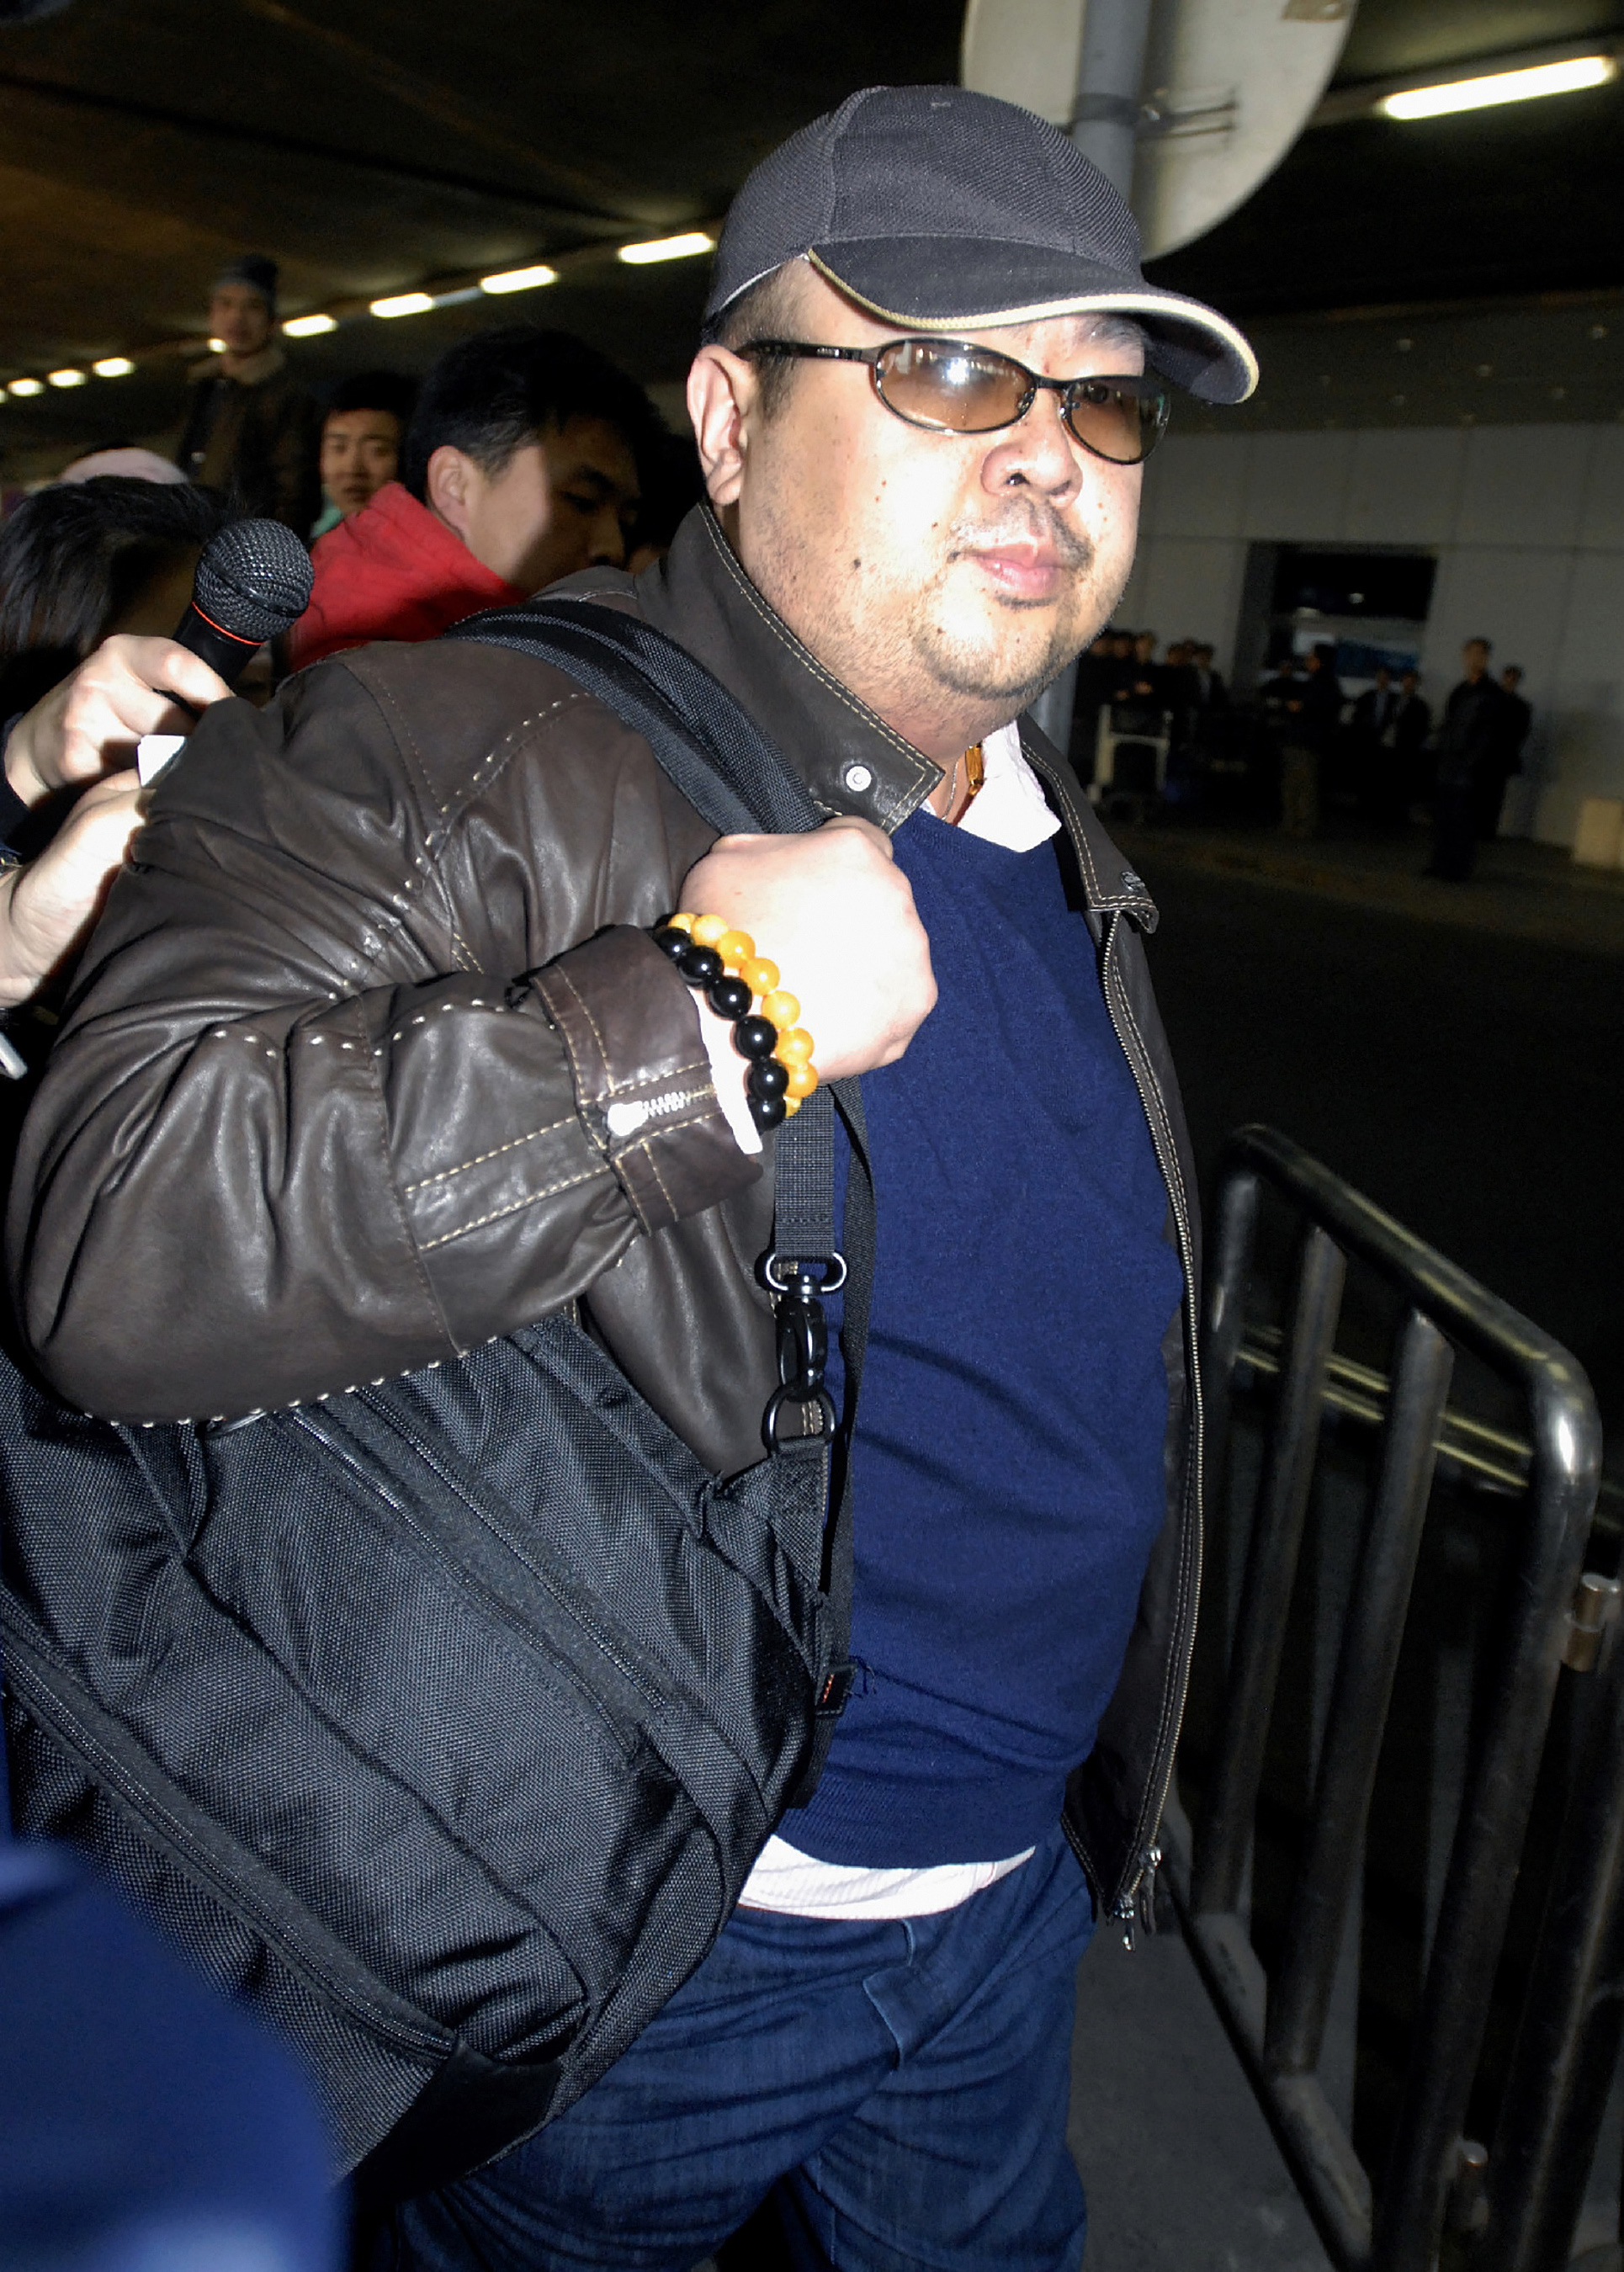 Former North Korean leader Kim Jong-Il's eldest son, Kim Jong-Nam, walking amongst journalists upon his arrival at Beijing's international airport on Feb. 11, 2007. (JIJI PRESS/AFP/Getty Images)